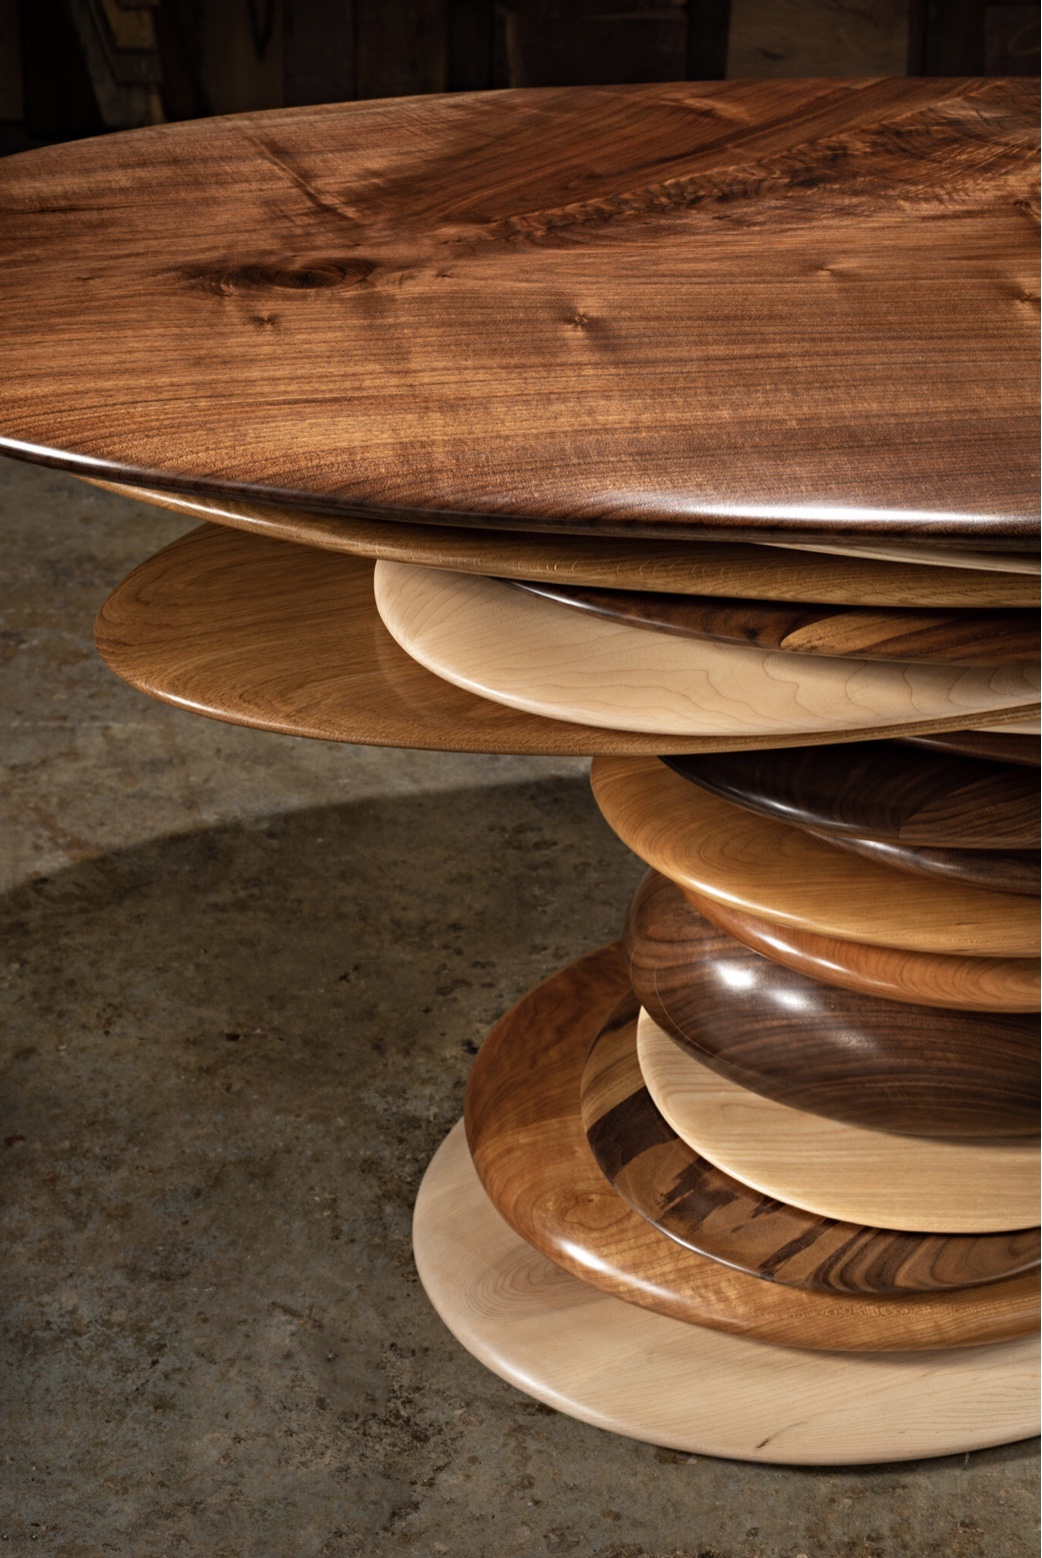 Detail of the kipping Stone Game Table by artist Christopher Kurtz